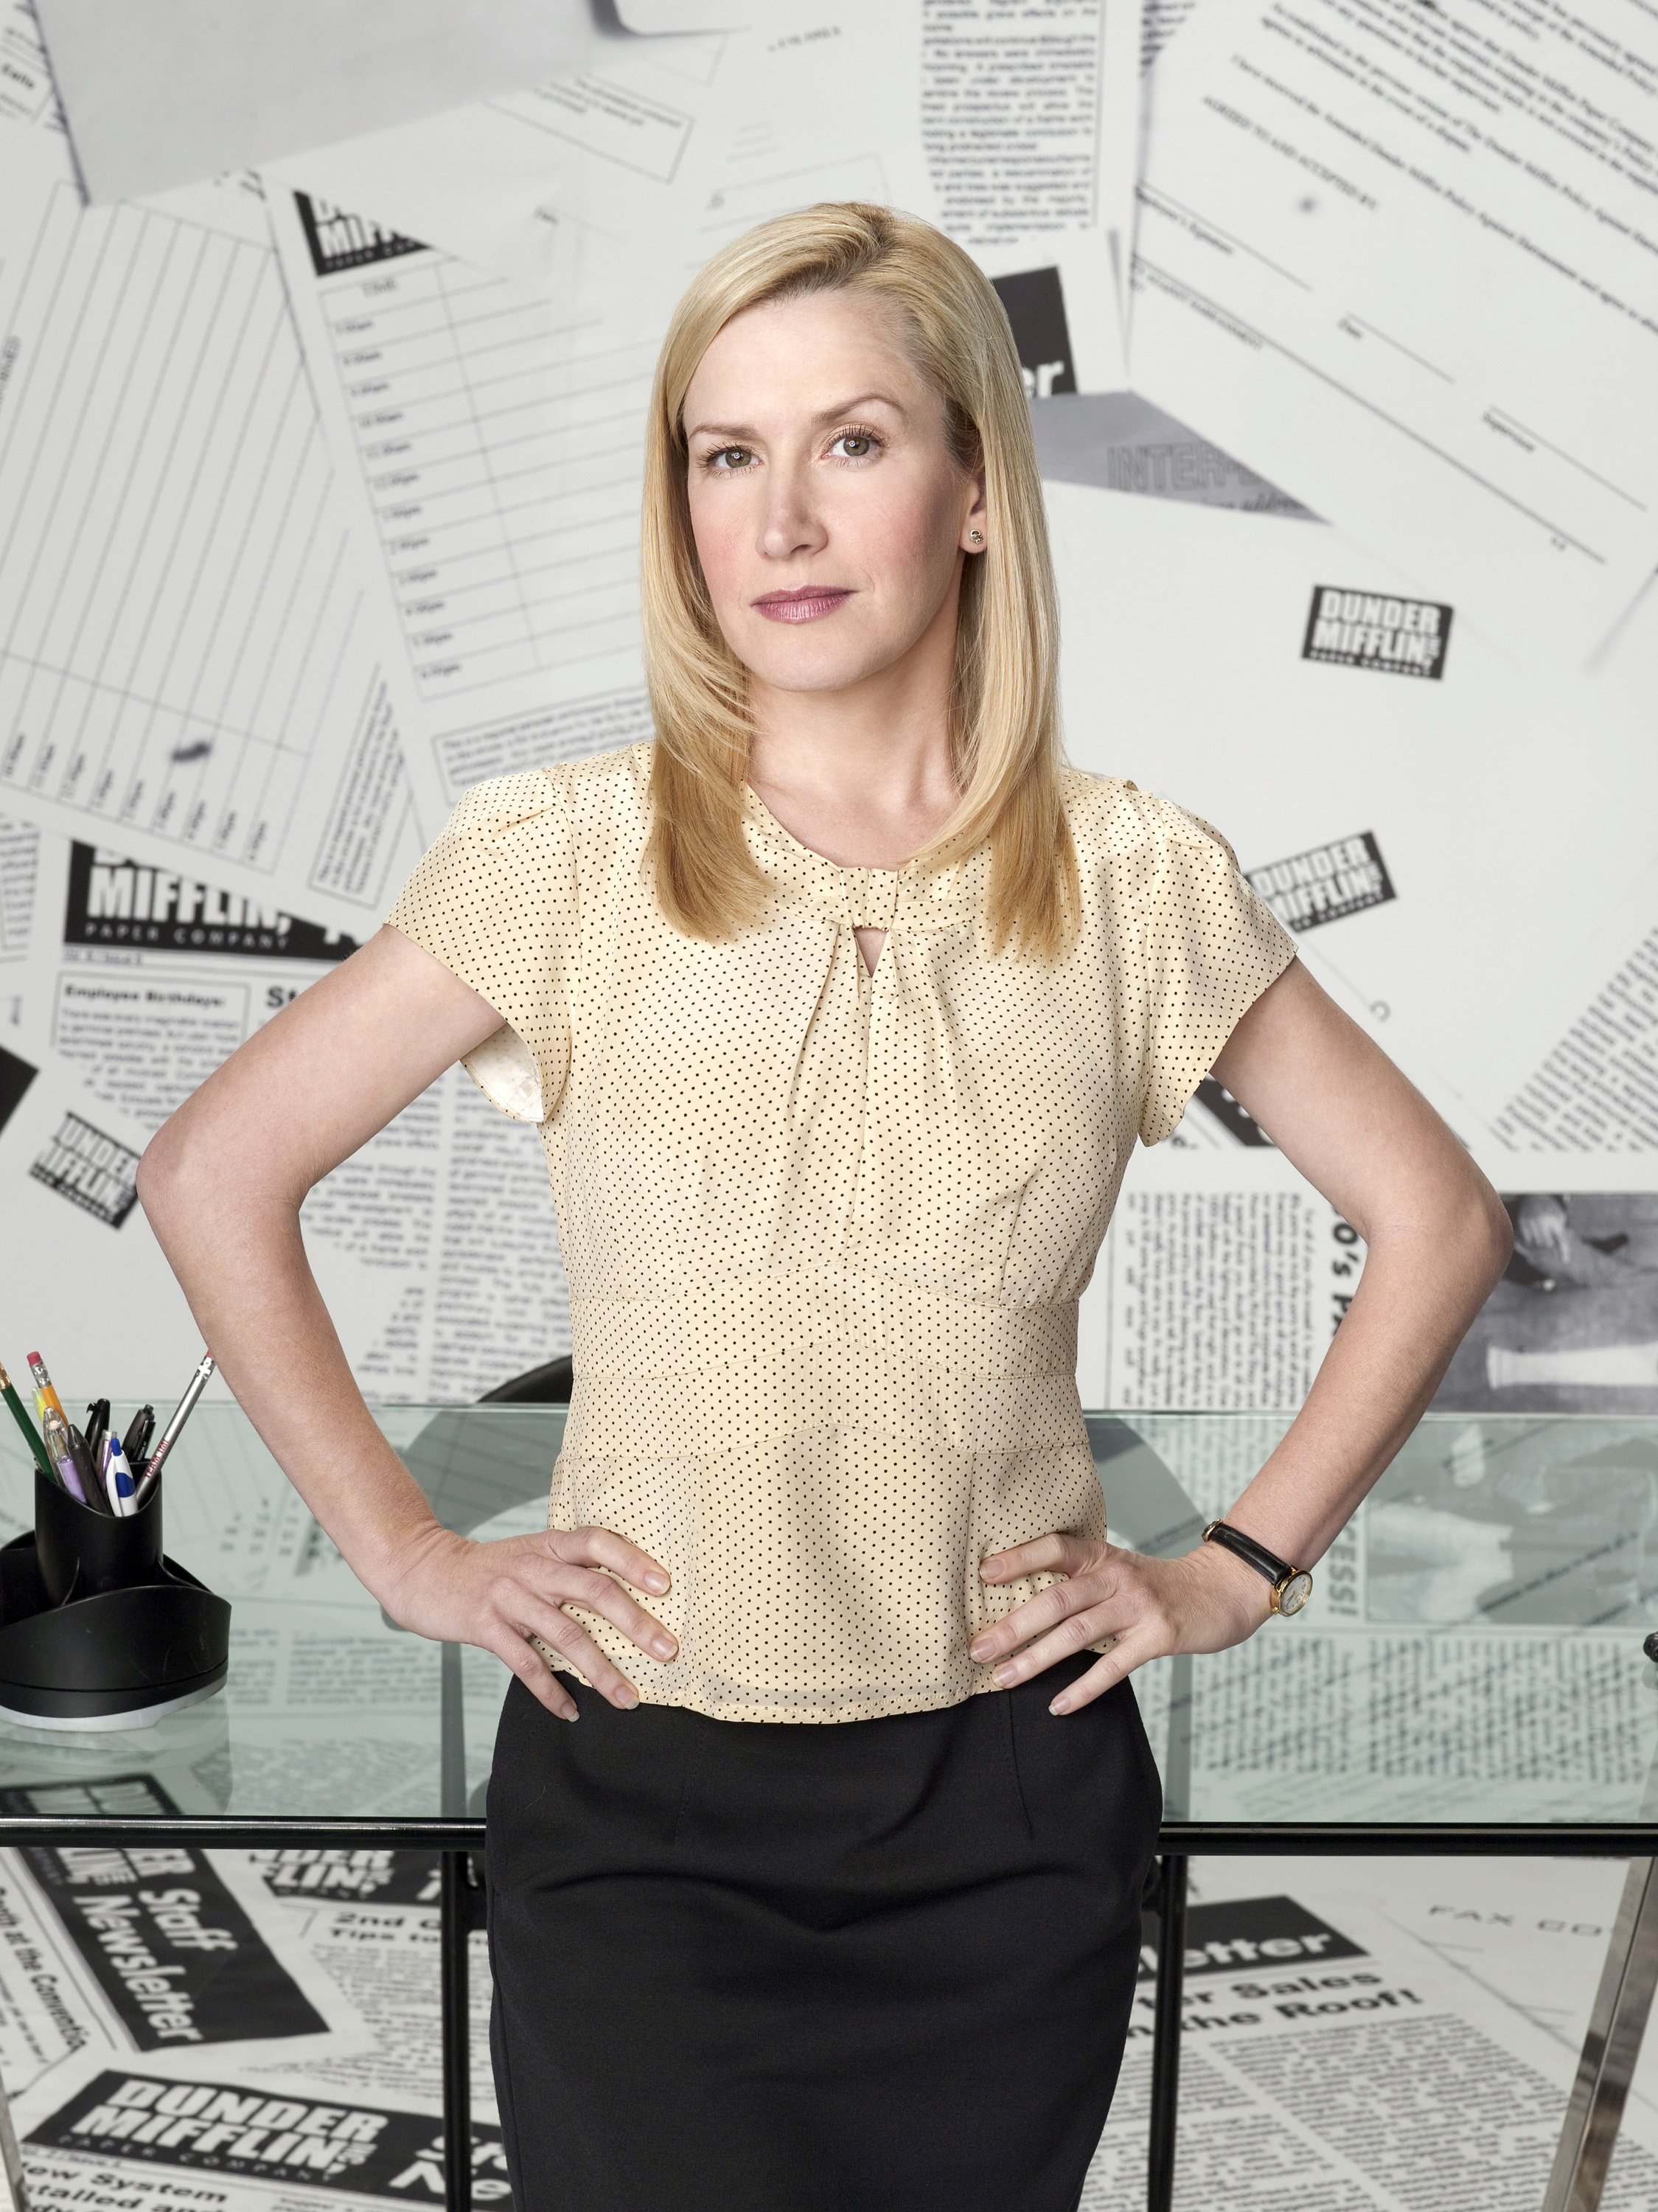 Angela Dip Fotos angela martin | dunderpedia: the office wiki | fandom